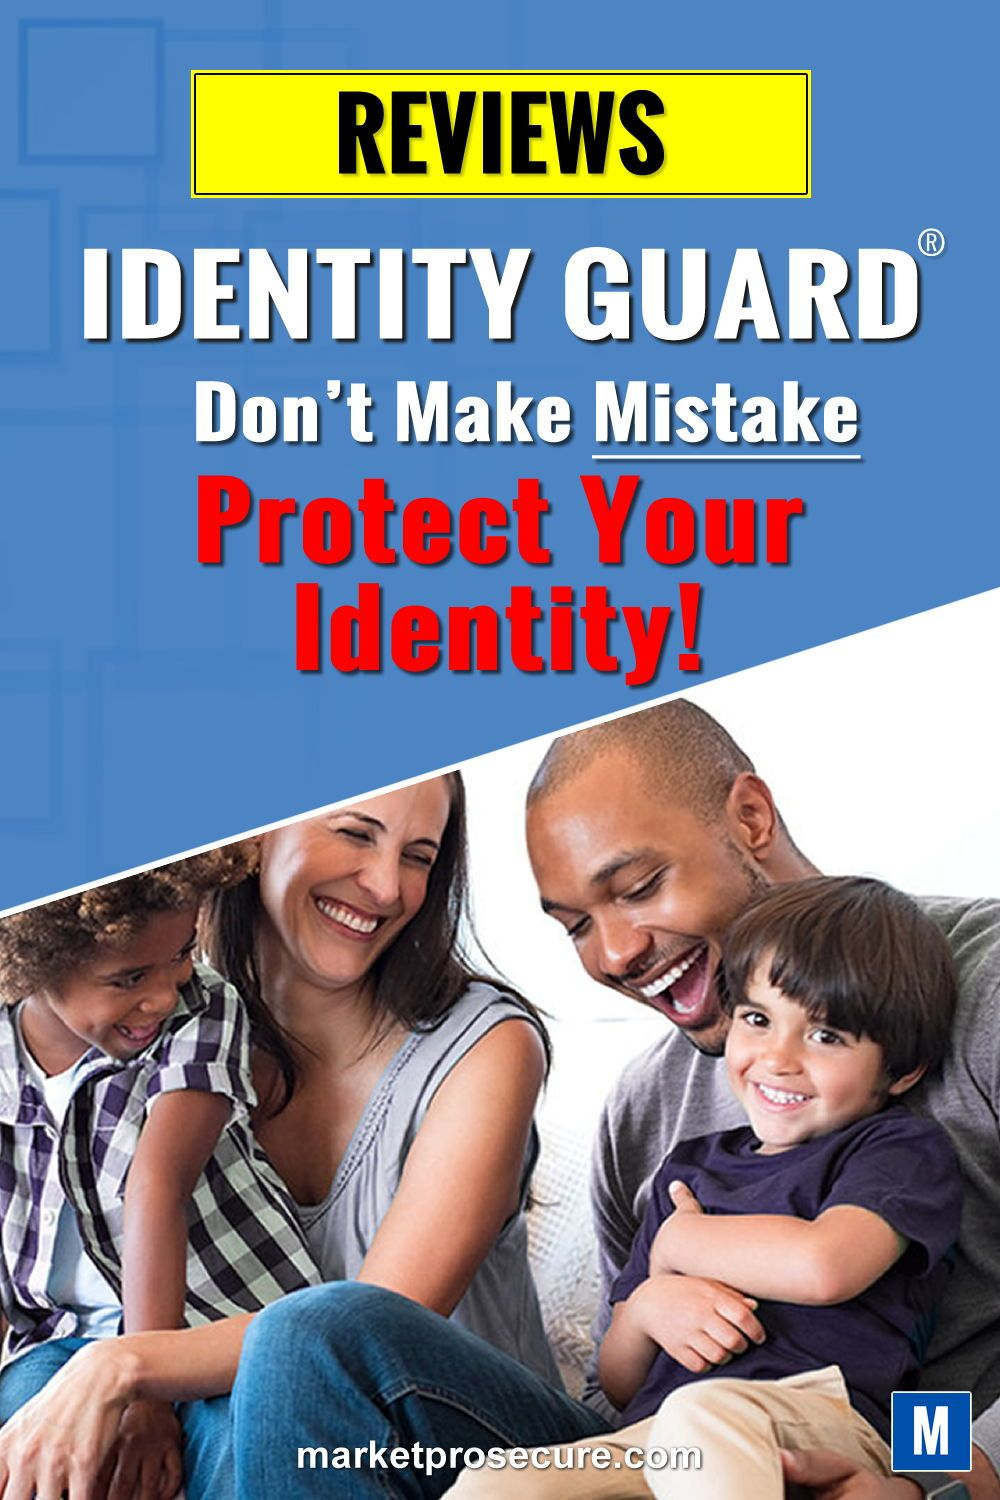 Identity guard review most powerful id theft protection